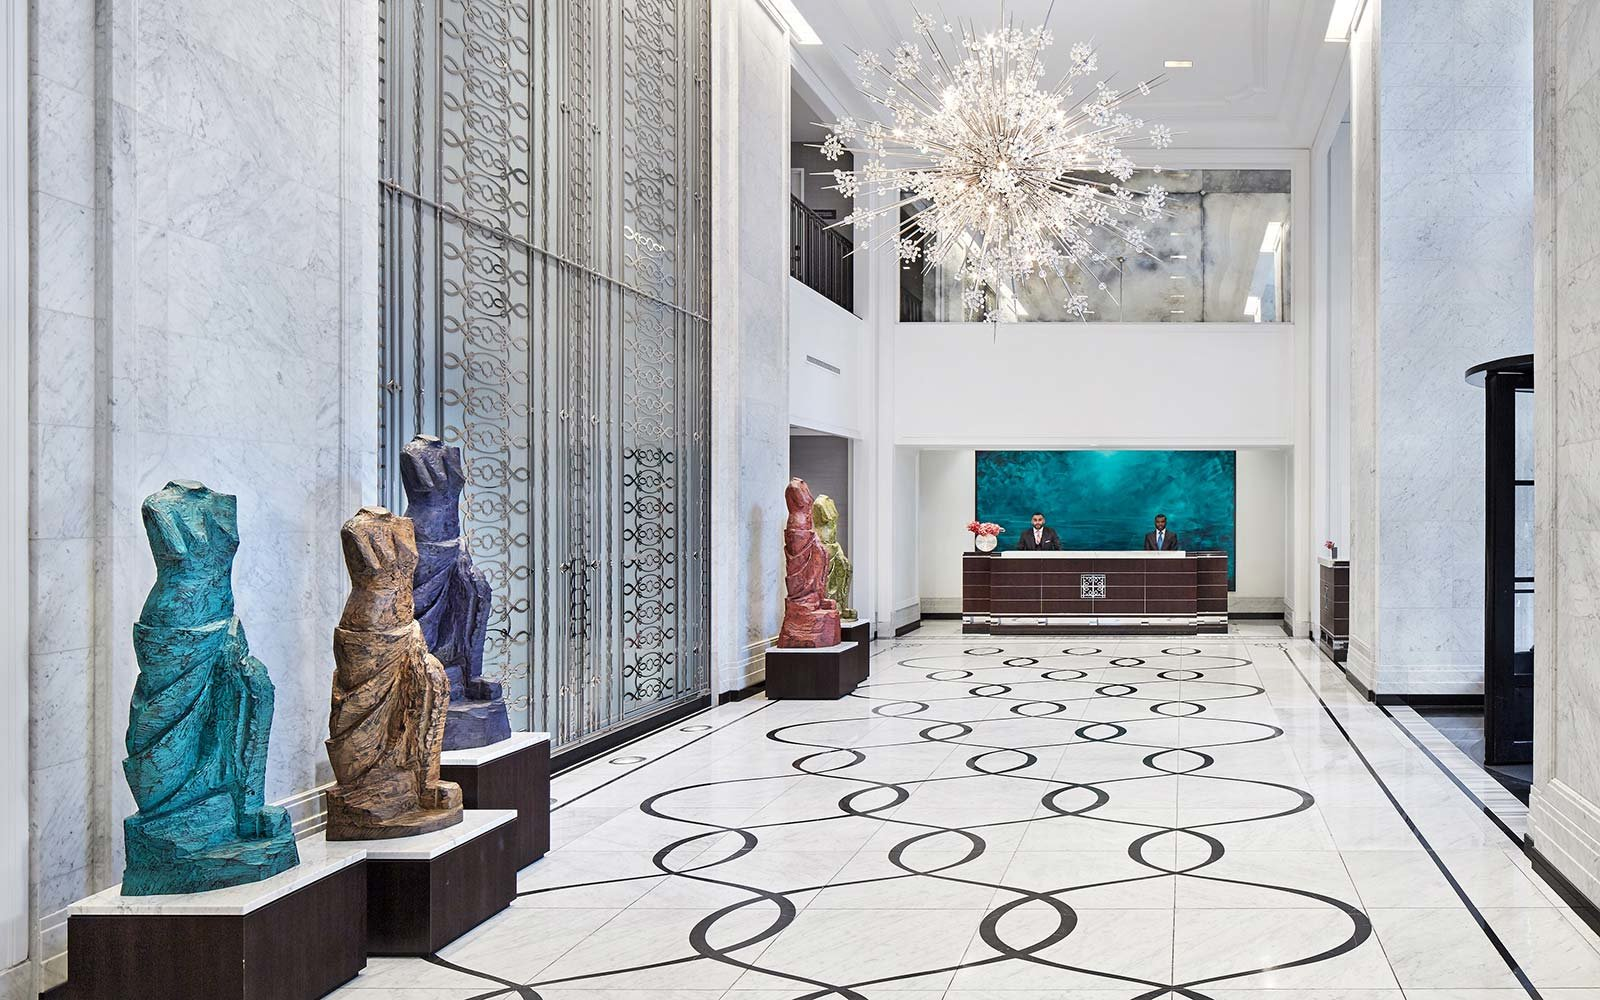 The 10 world 39 s best hotels in chicago in 2017 travel for Design hotel lizum 1600